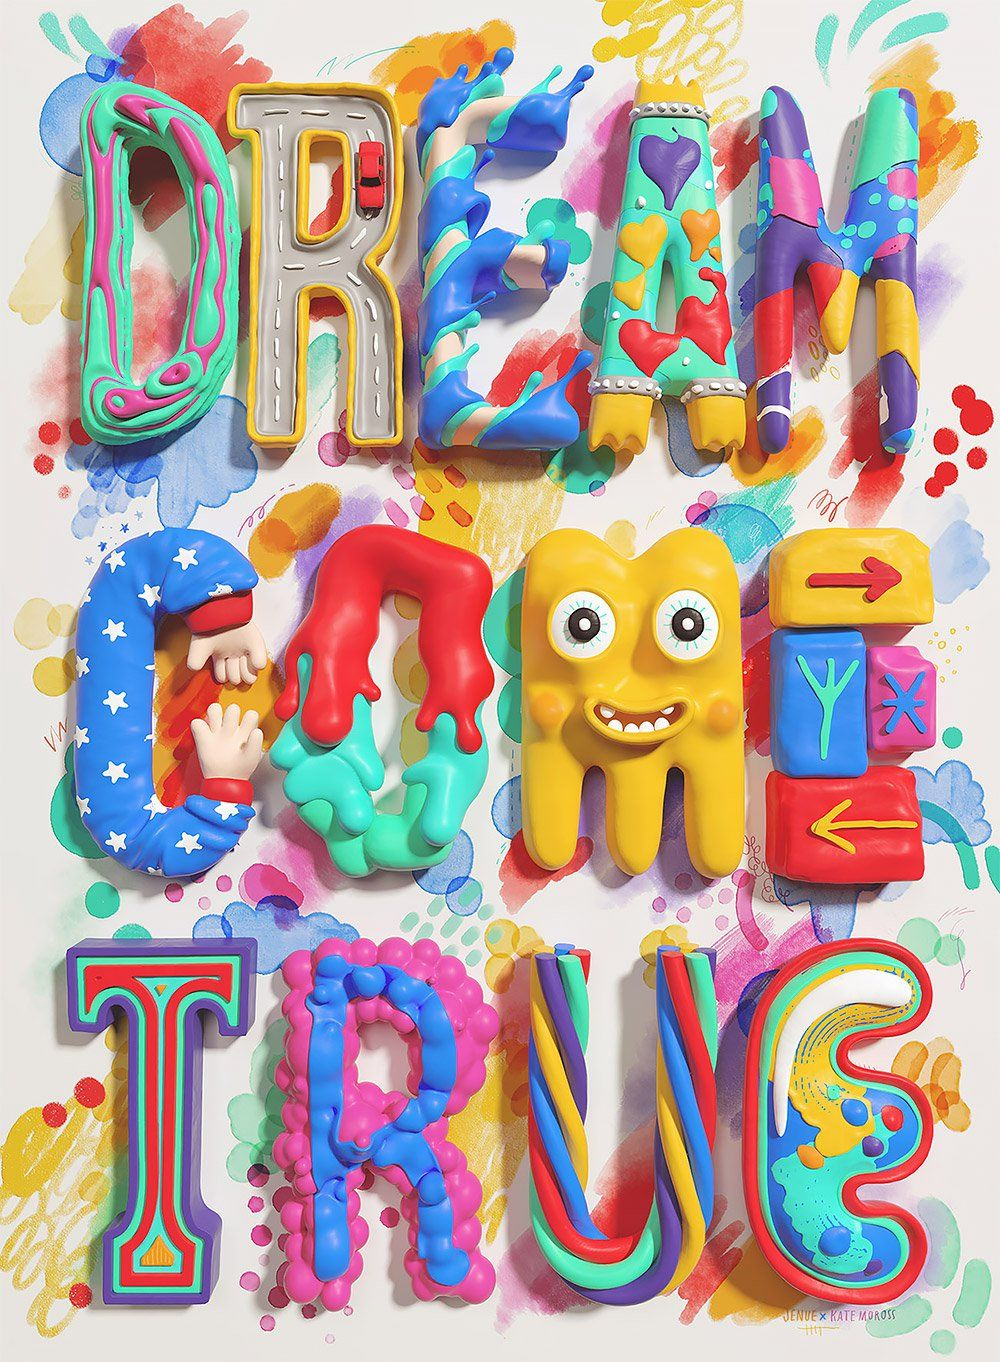 3D Typography by Jenue   Inspiration Grid